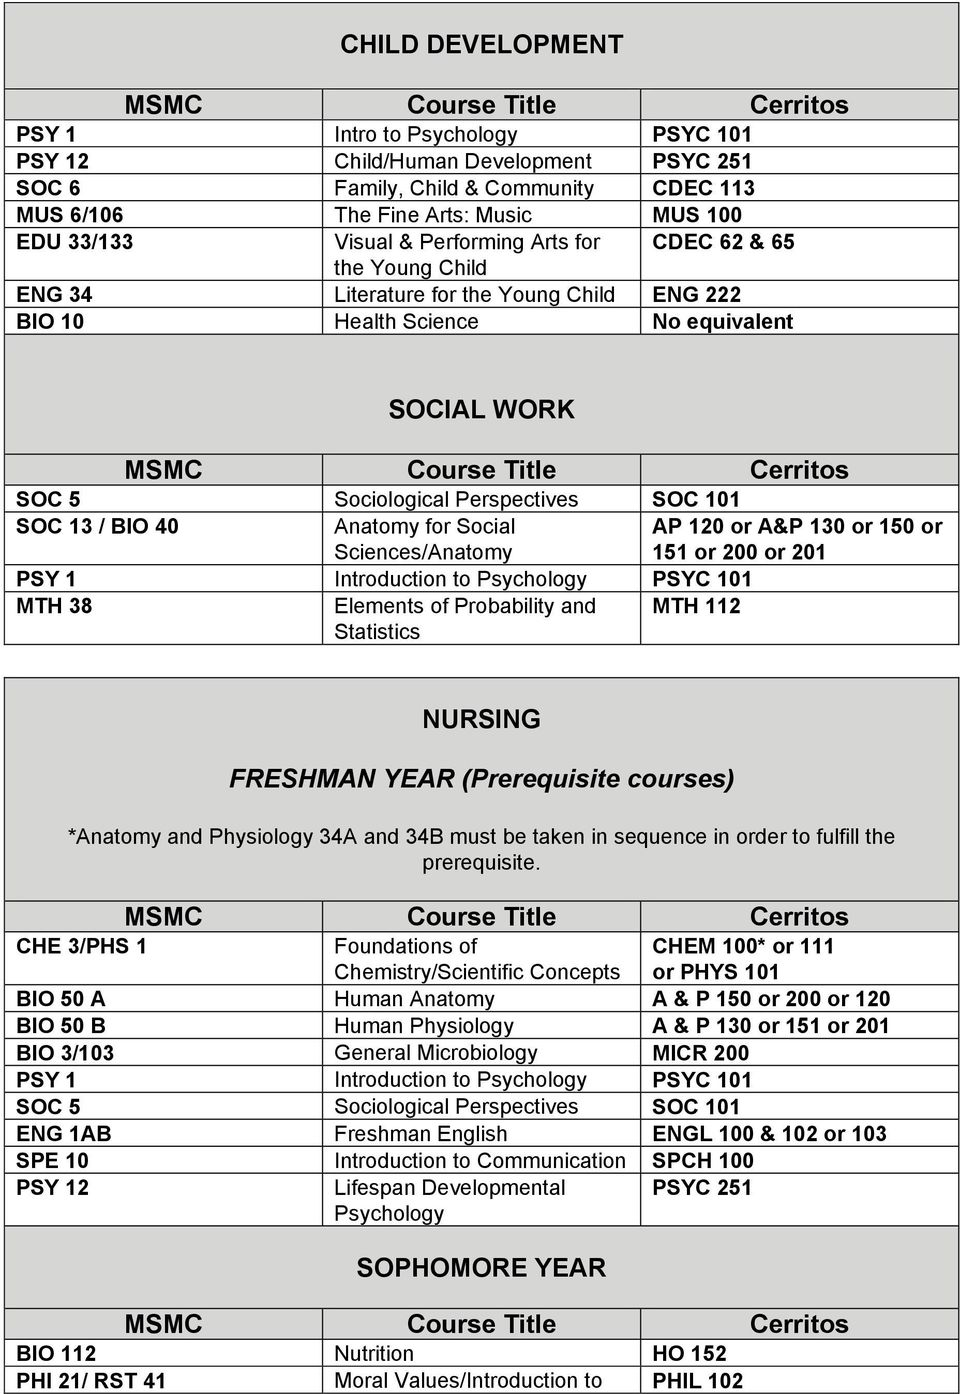 Anatomy for Social Sciences/Anatomy AP 120 or A&P 130 or 150 or 151 or 200 or 201 PSY 1 Introduction to Psychology PSYC 101 MTH 38 Elements of Probability and Statistics MTH 112 NURSING FRESHMAN YEAR